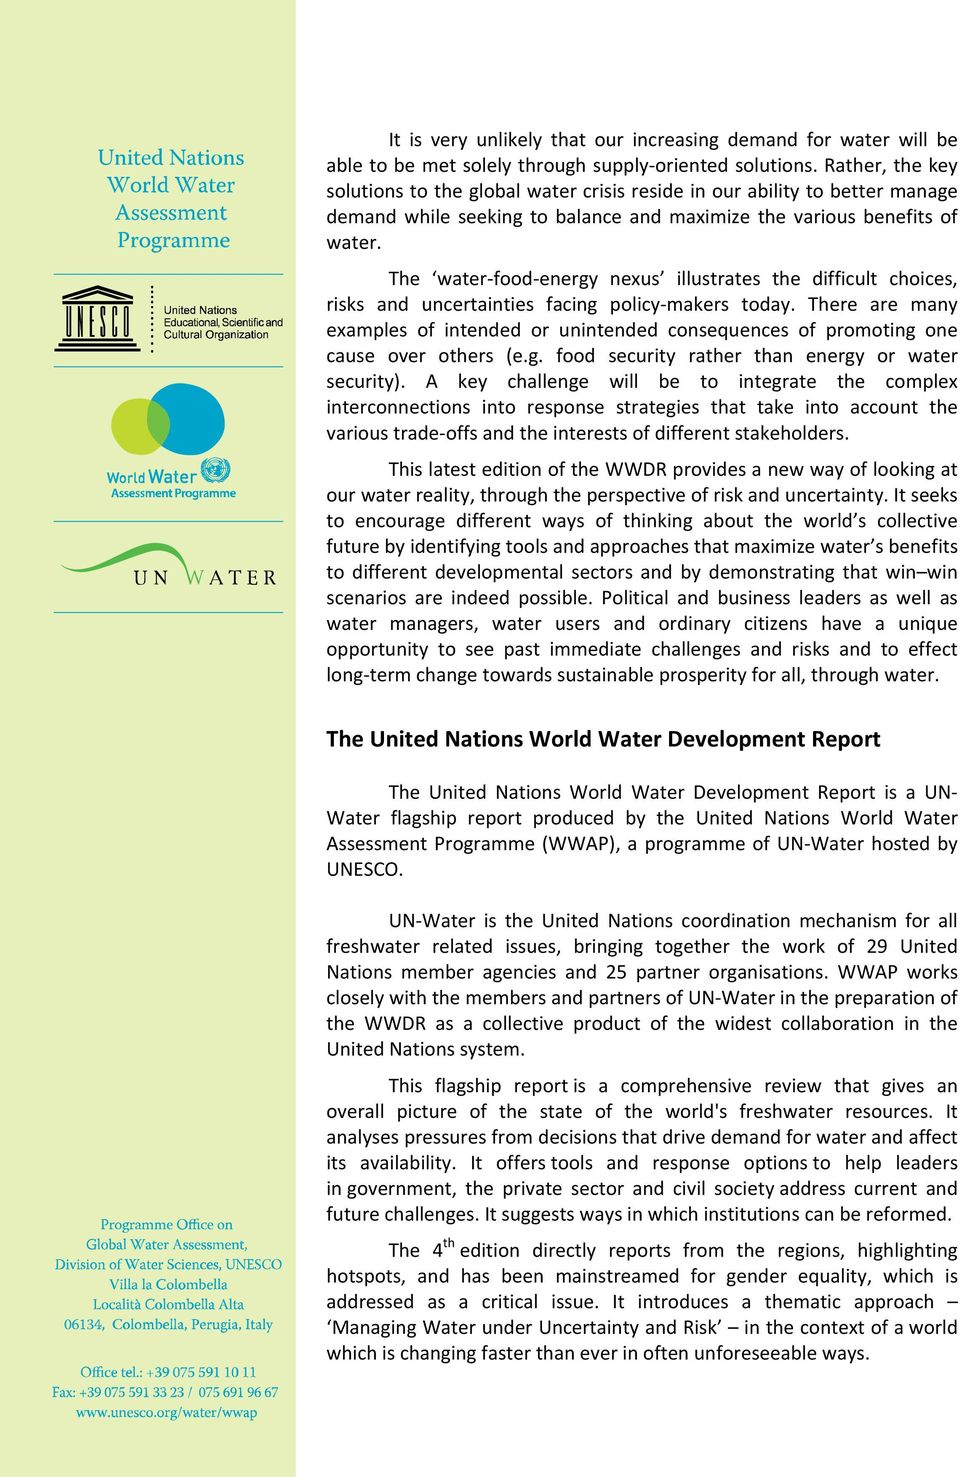 The water food energy nexus illustrates the difficult choices, risks and uncertainties facing policy makers today.